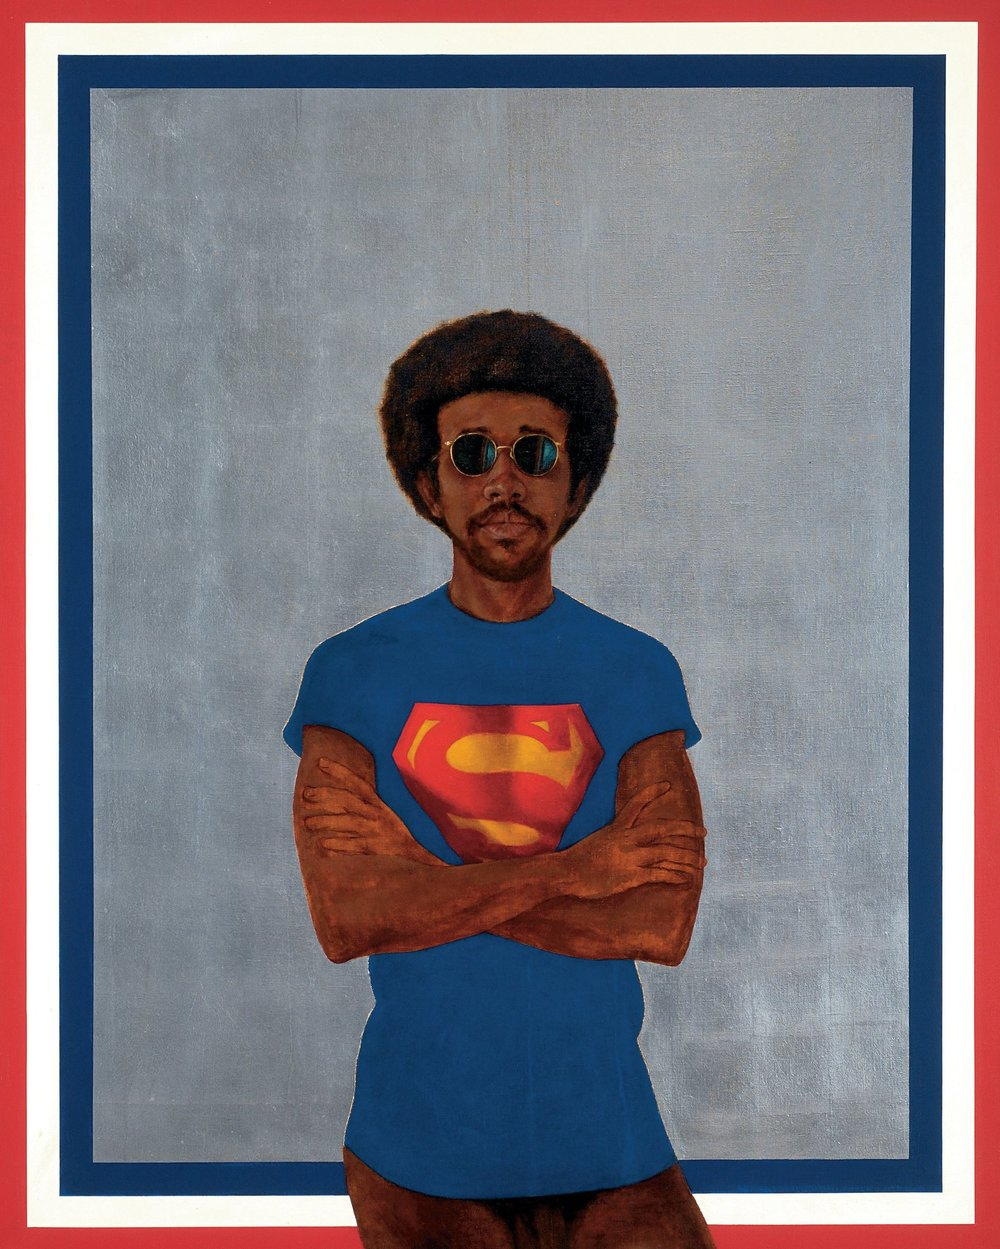 Barkley L. Hendrick's Icon for  My Man Superman (Superman Never Saved Any Black People - Bobby Seale ) Image Credit: Jack Shainman Gallery, NY.